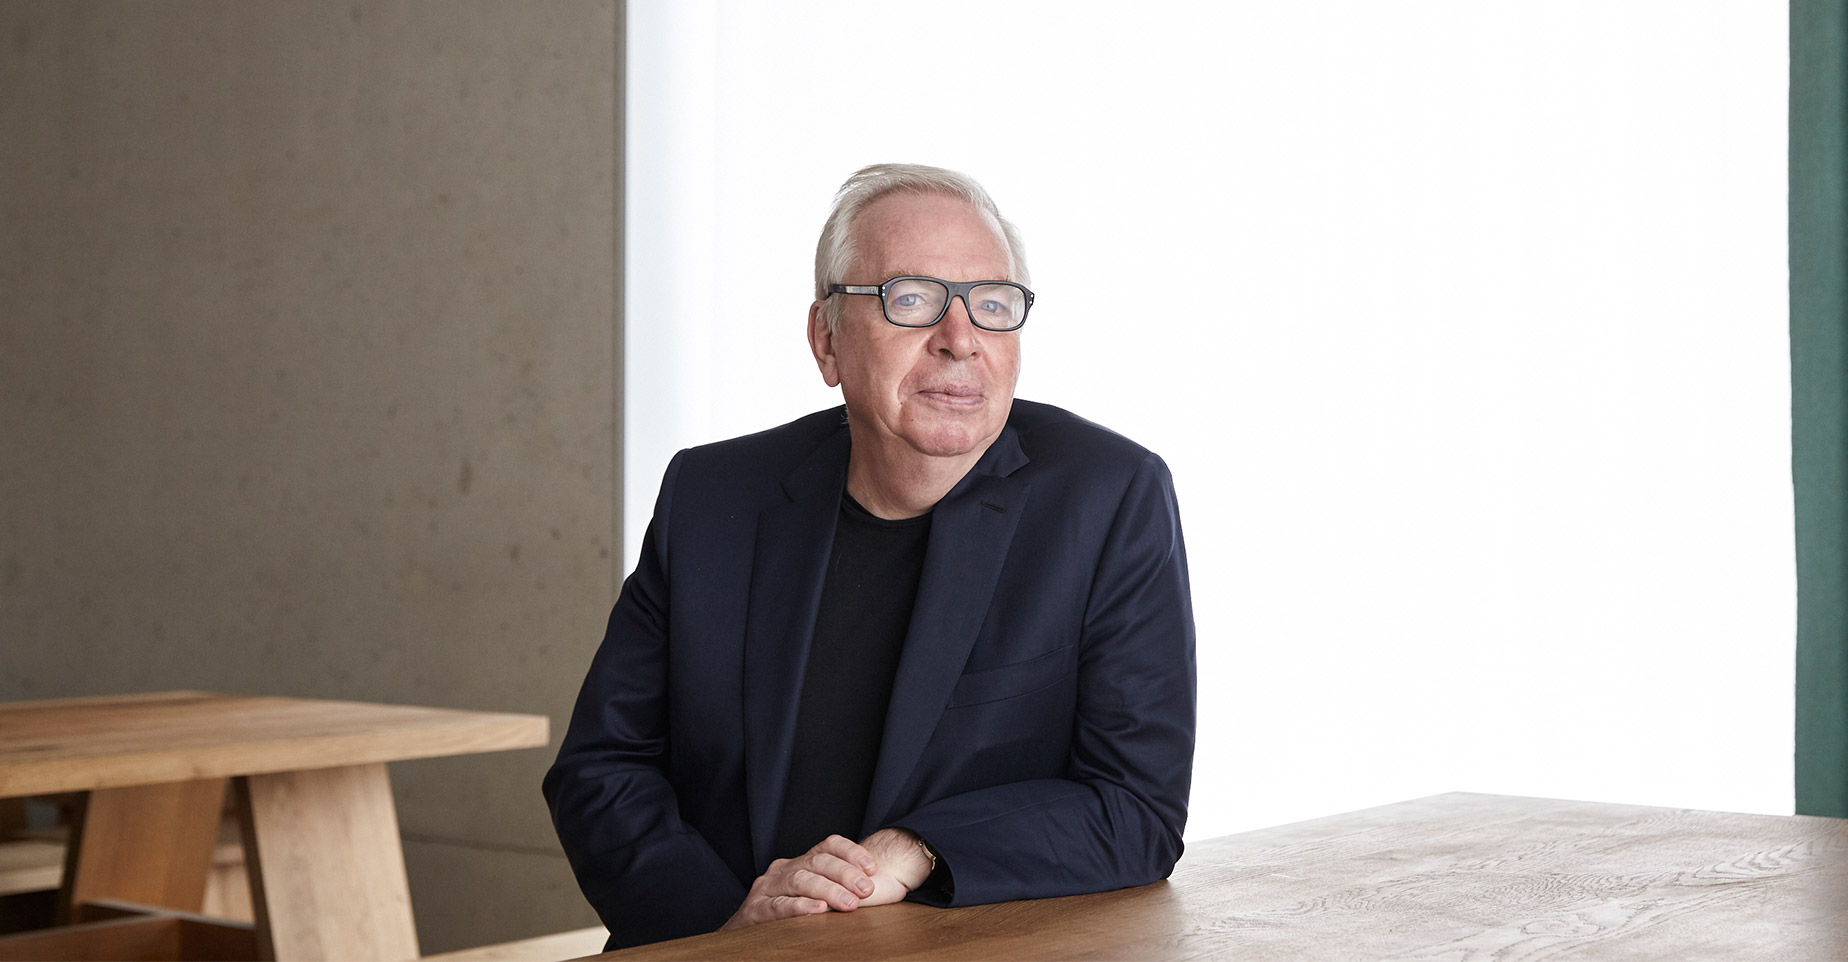 david chipperfield of everything you need to know about David Chipperfield